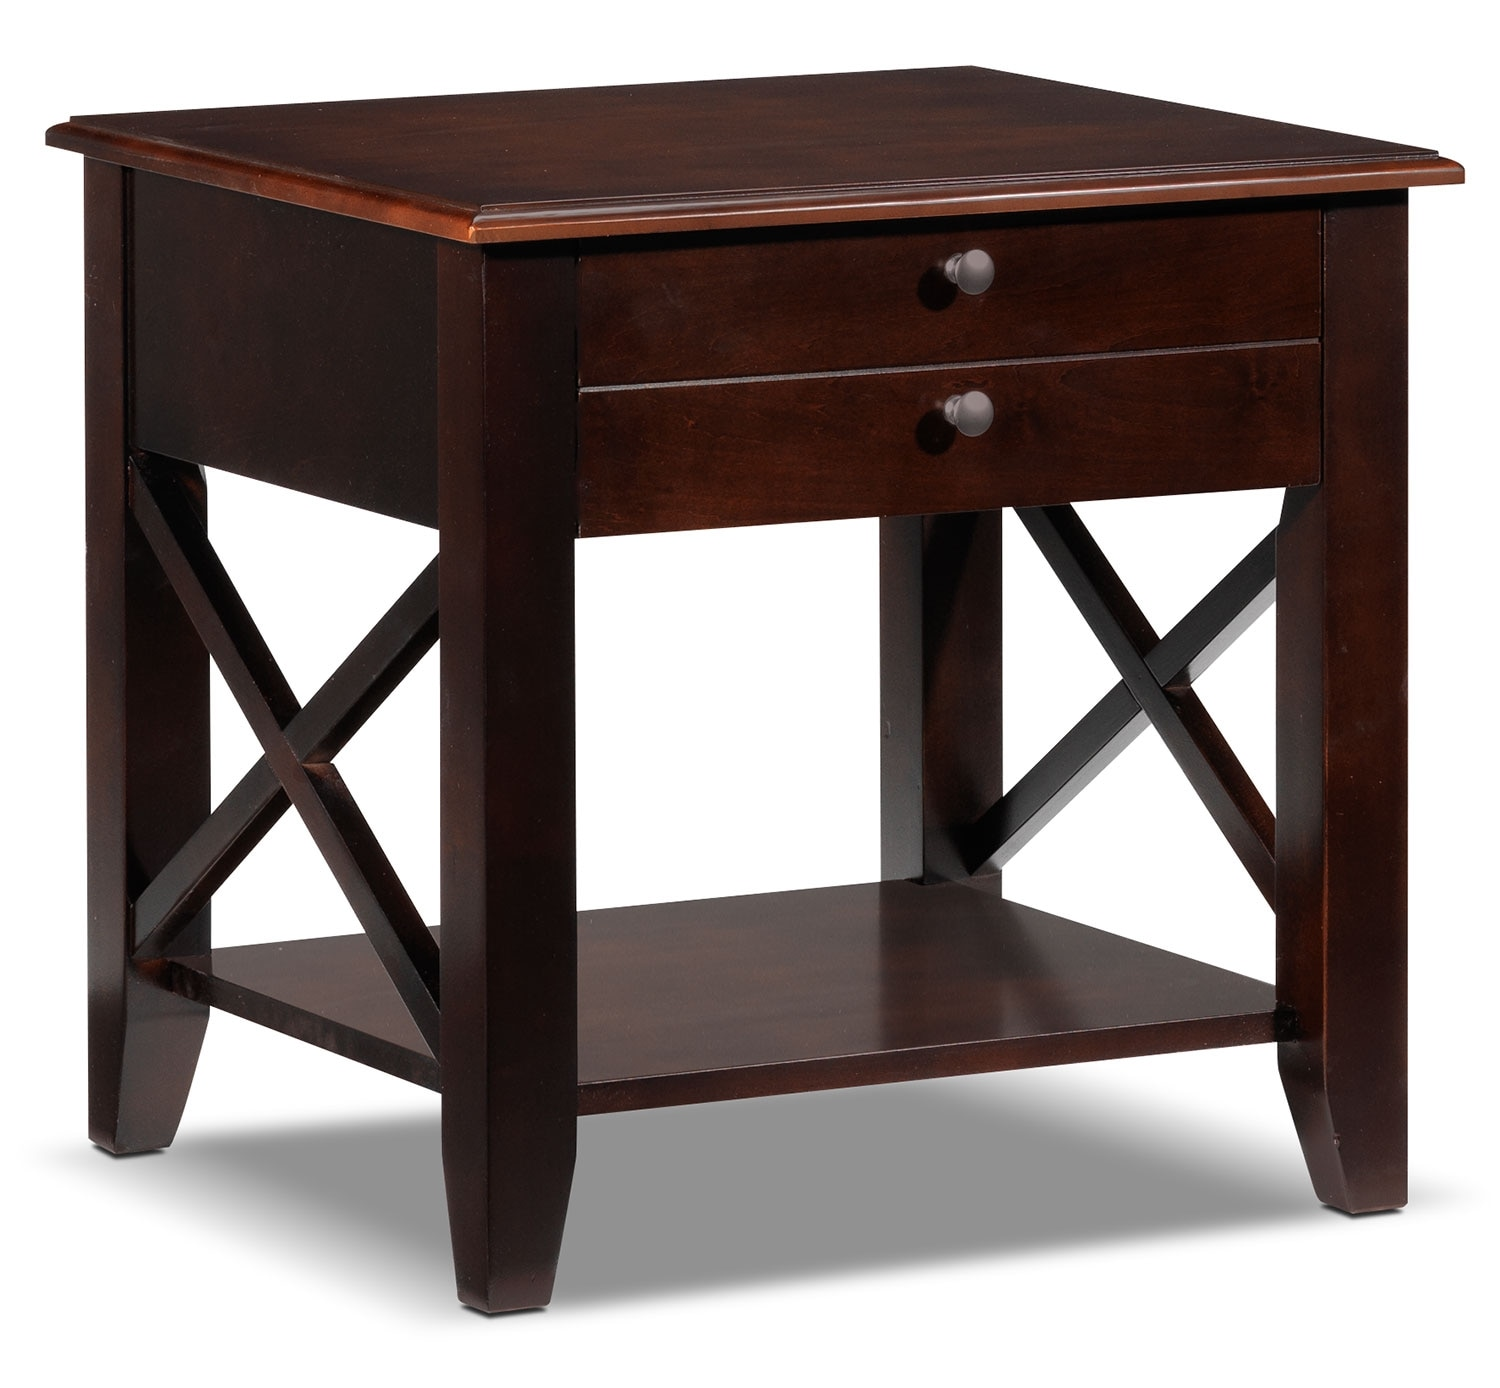 Accent and Occasional Furniture - Andover End Table - Brown Cherry